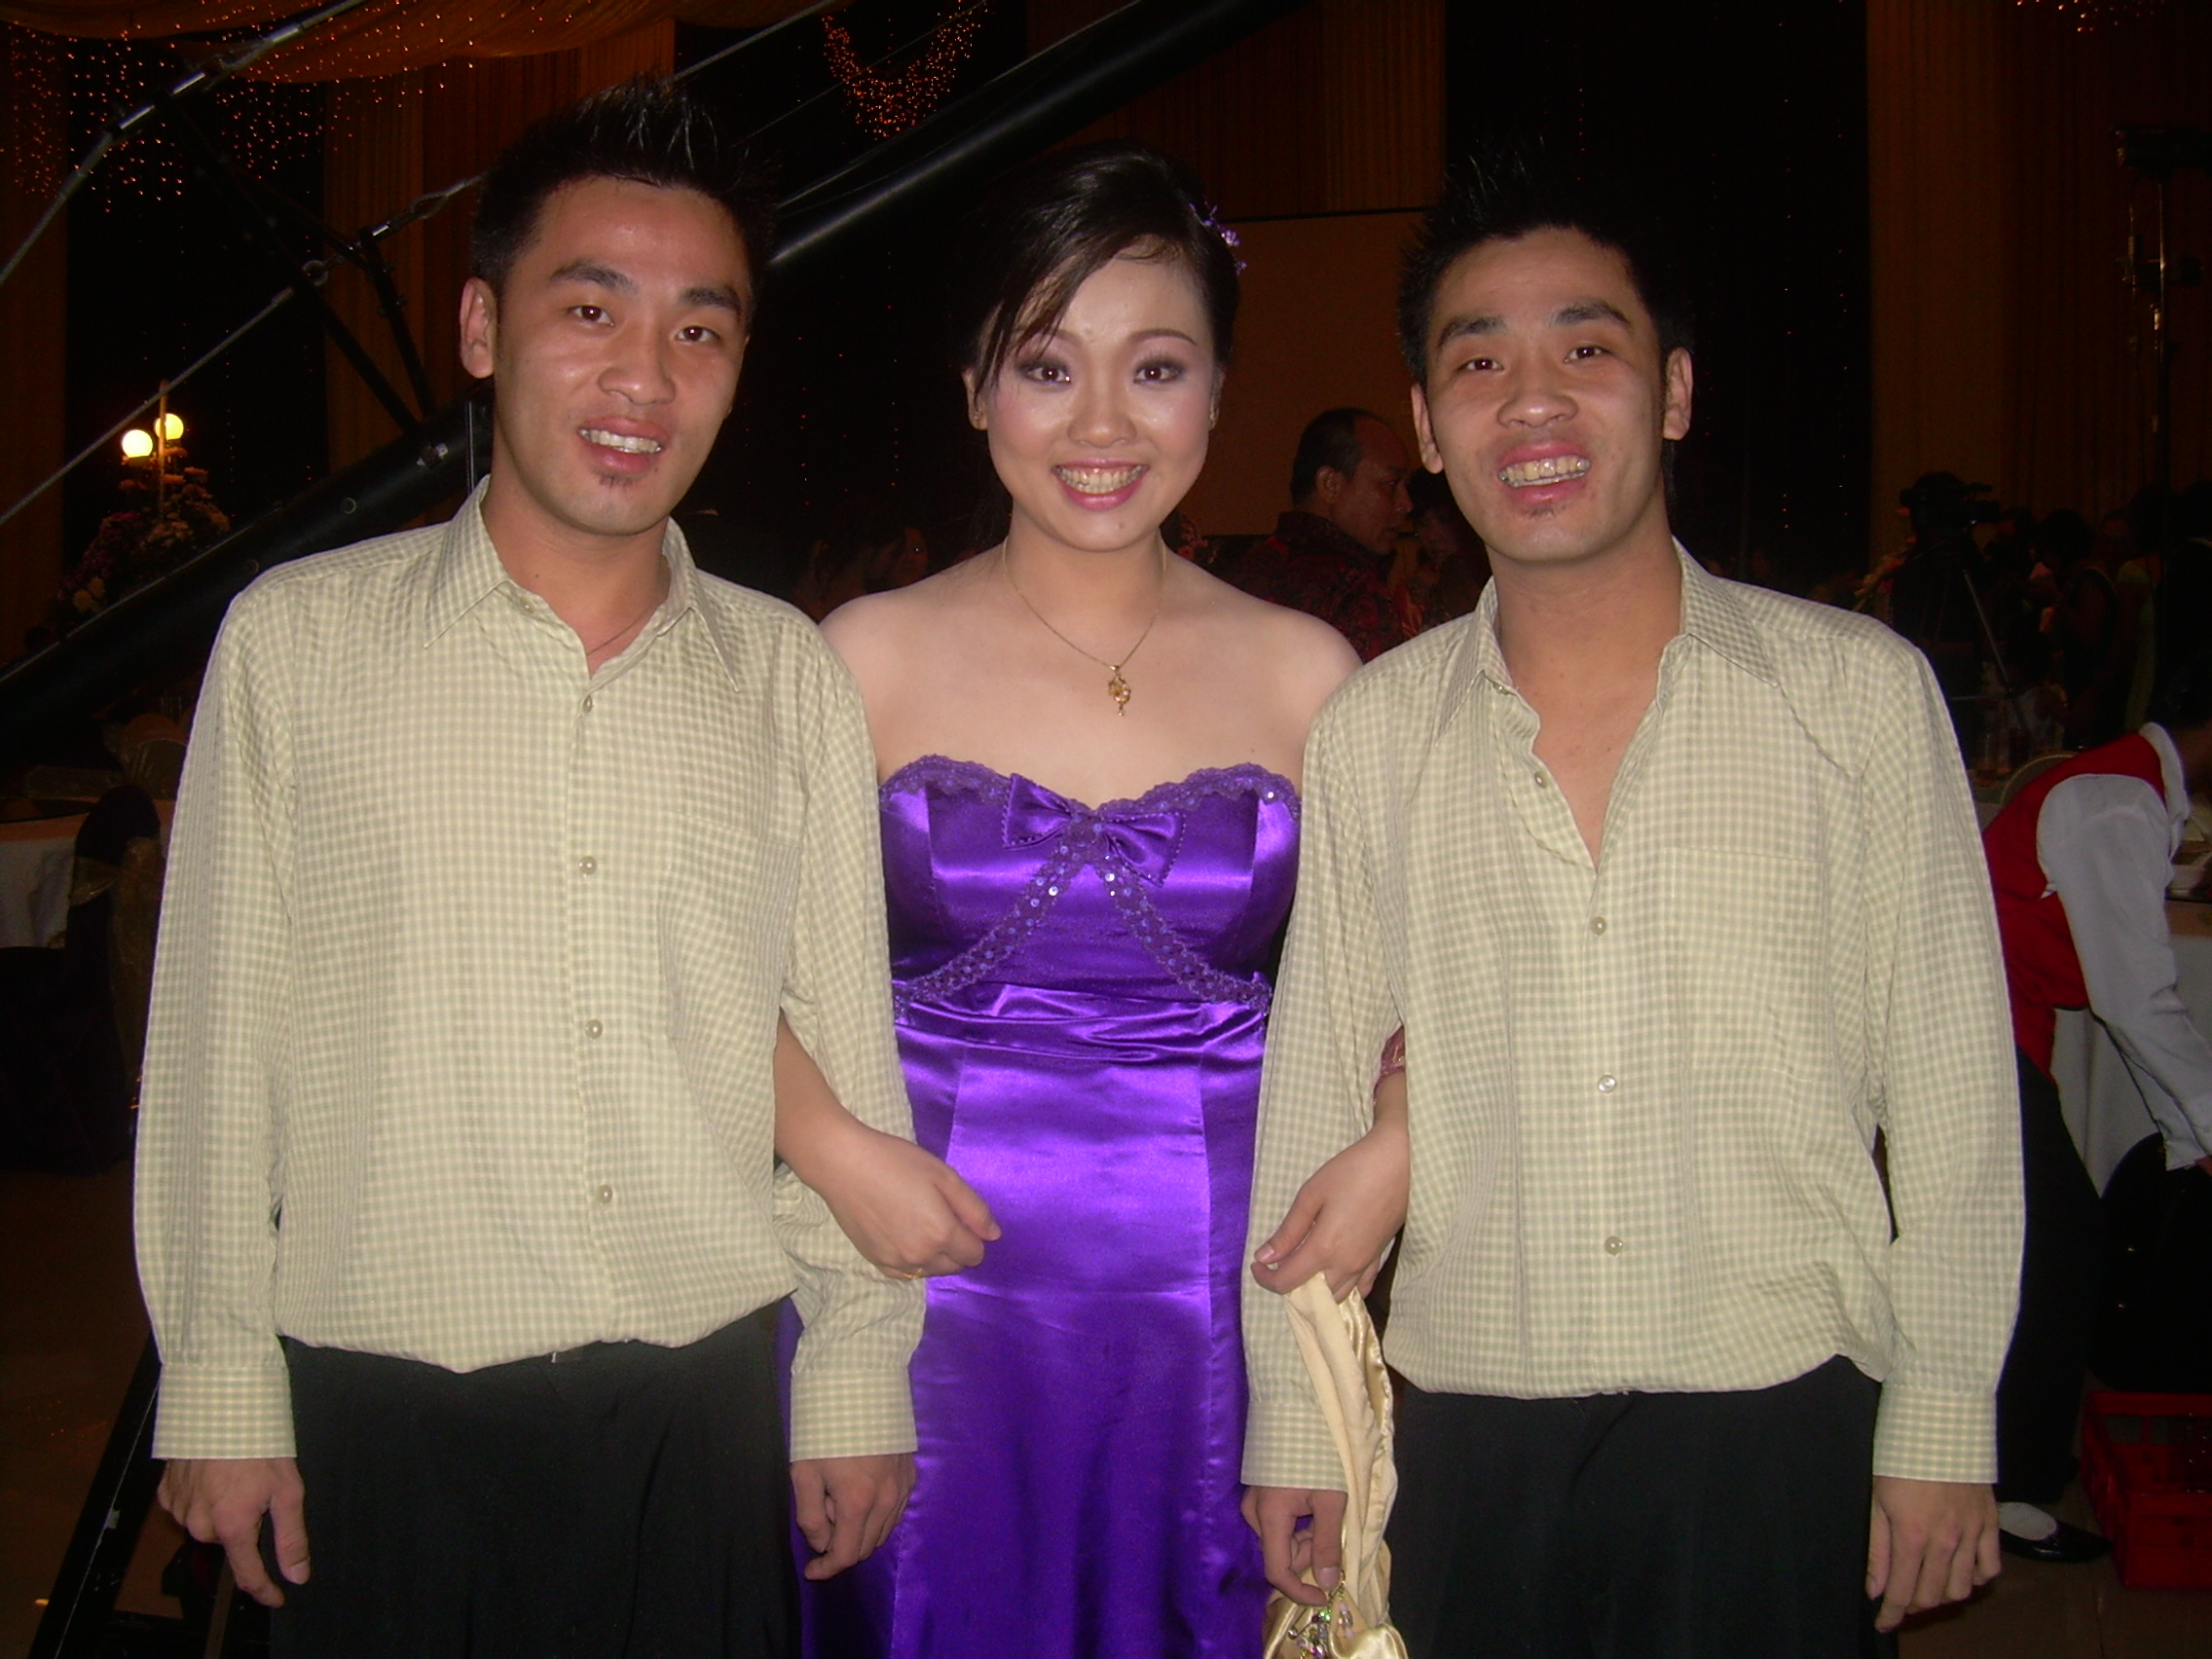 My twin brothers and me